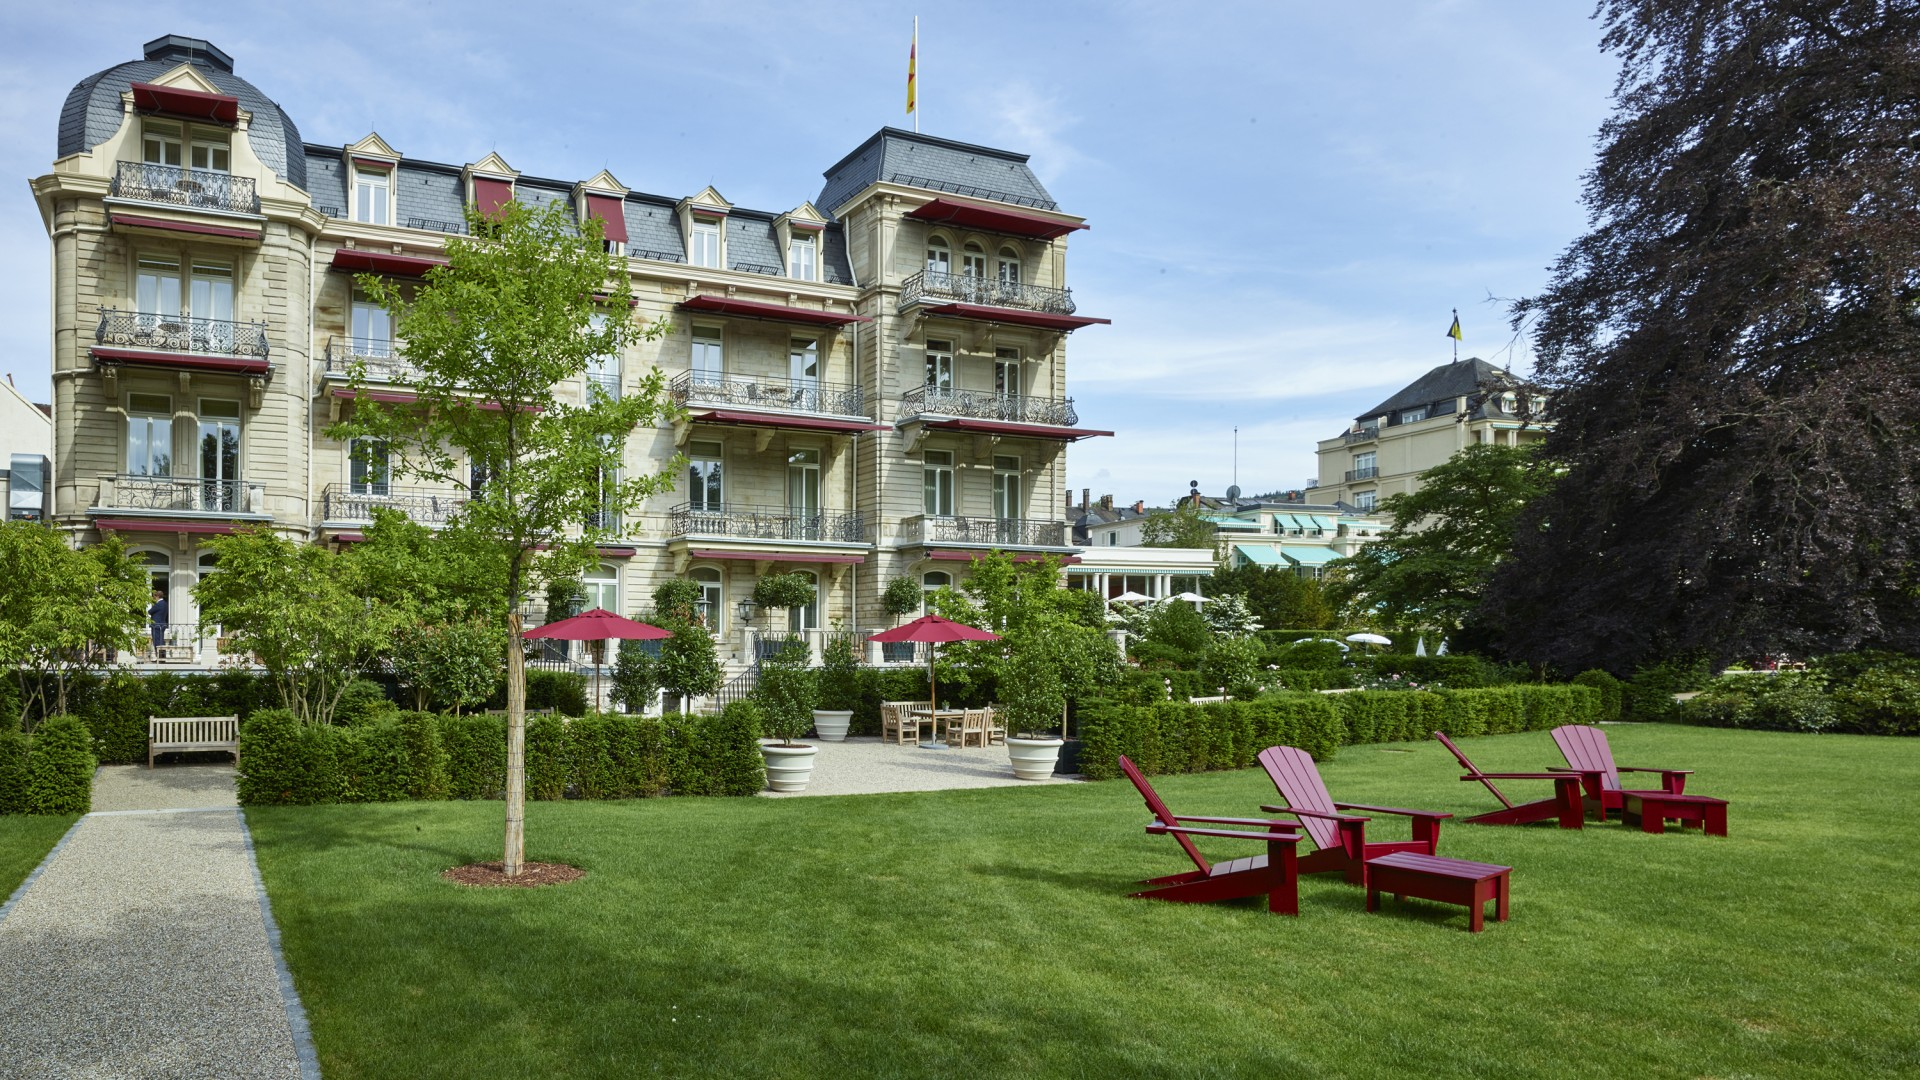 Villa Stephanie at Brenners Spa and hotel, Baden-Baden, Germany